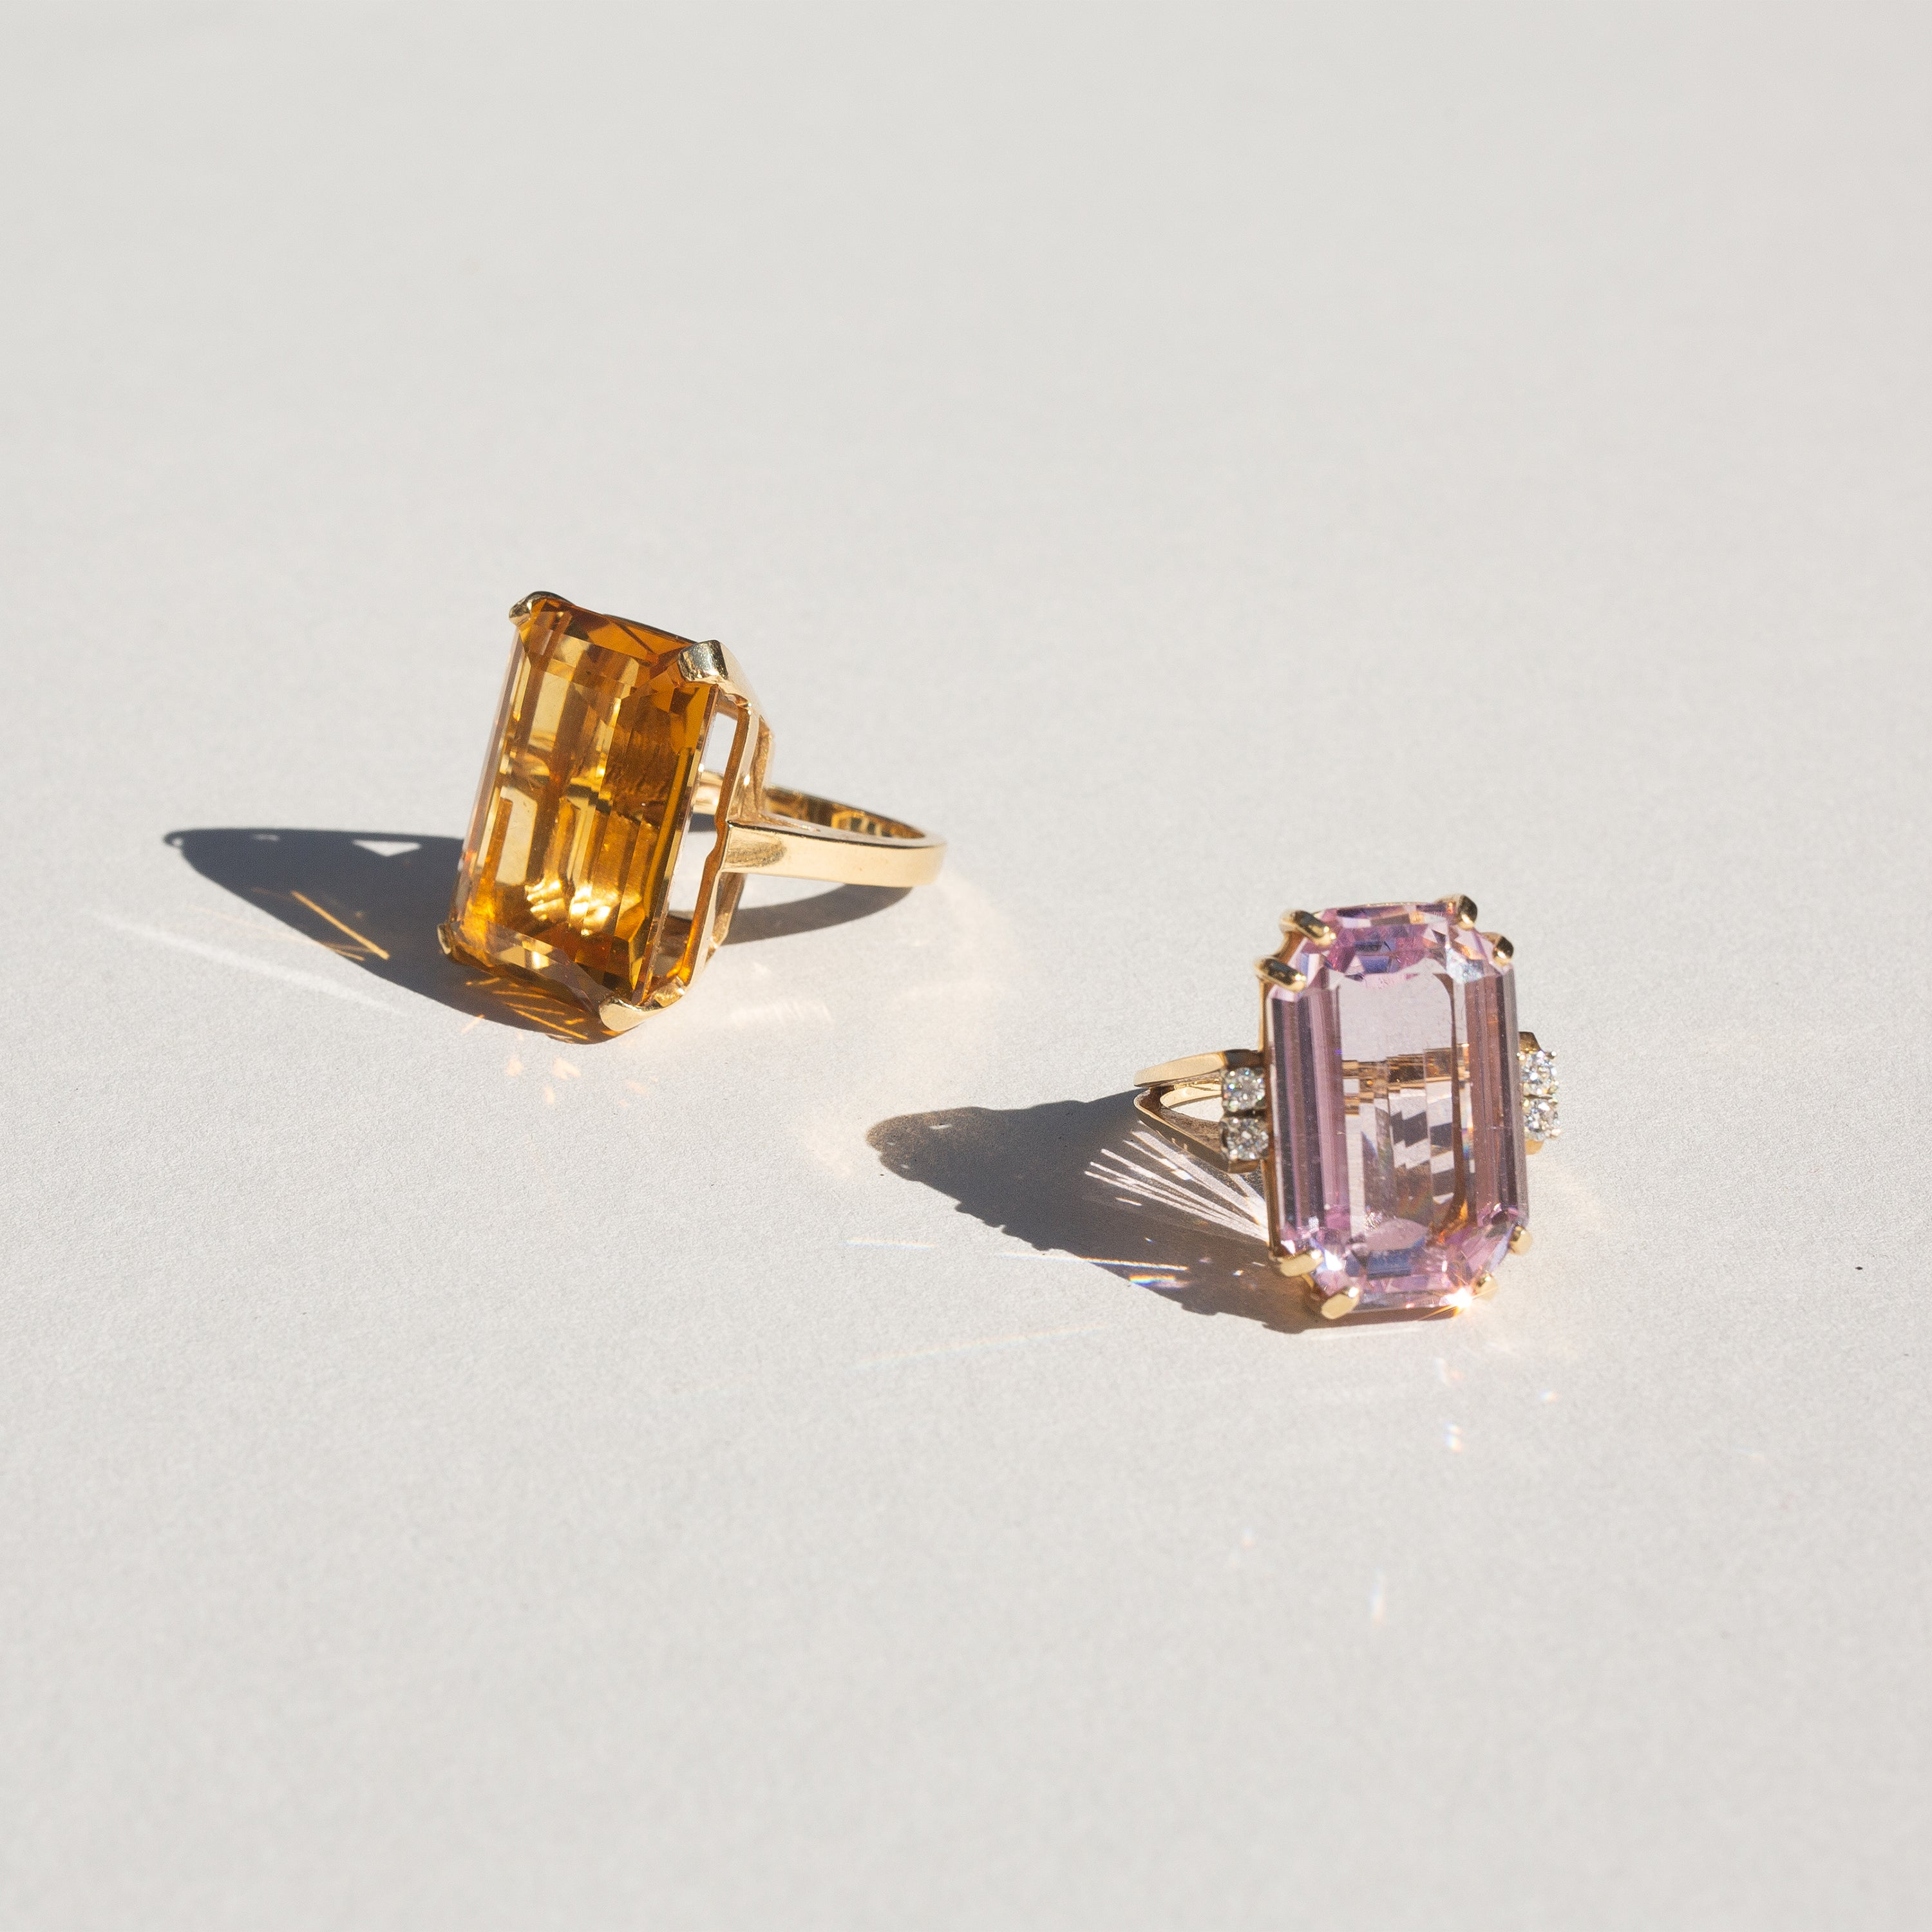 Large Kunzite and Diamond 14k Gold Cocktail Ring